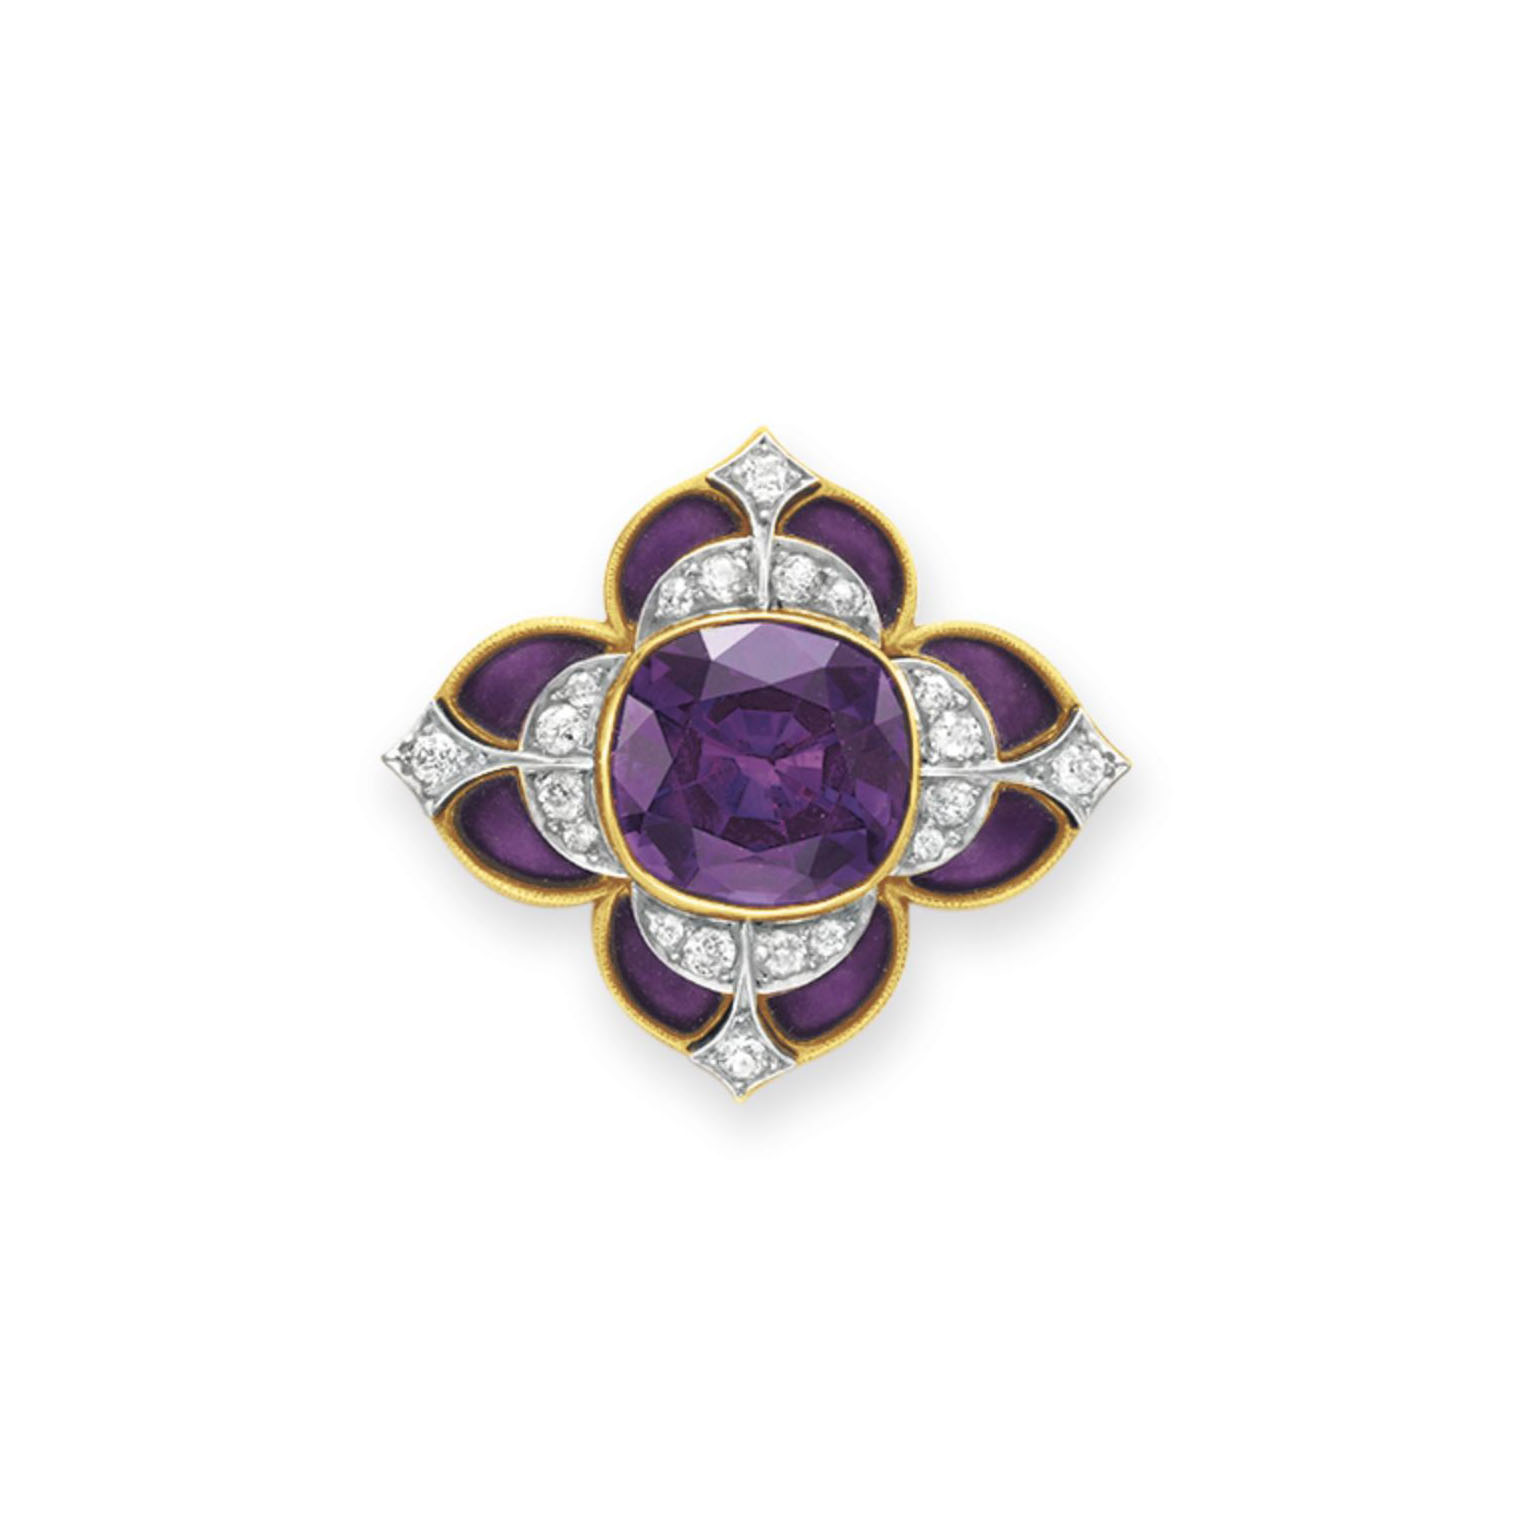 AN ANTIQUE AMETHYST, DIAMOND AND ENAMEL BROOCH, BY MARCUS & CO.